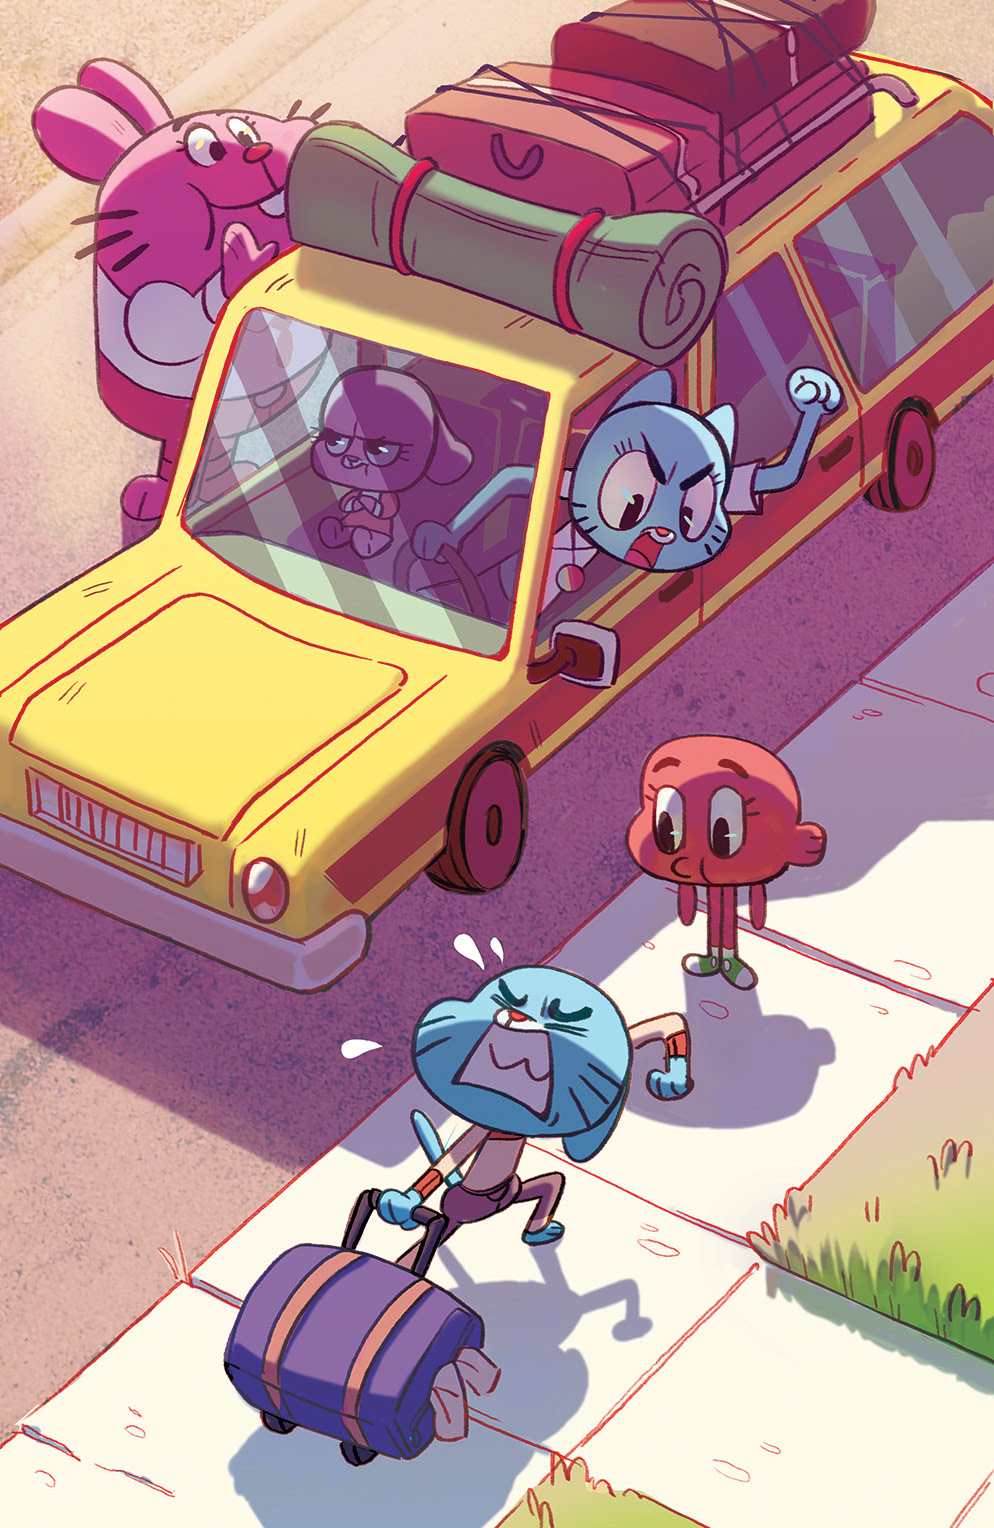 THE AMAZING WORLD OF GUMBALL #3 Cover B by Christina Chang